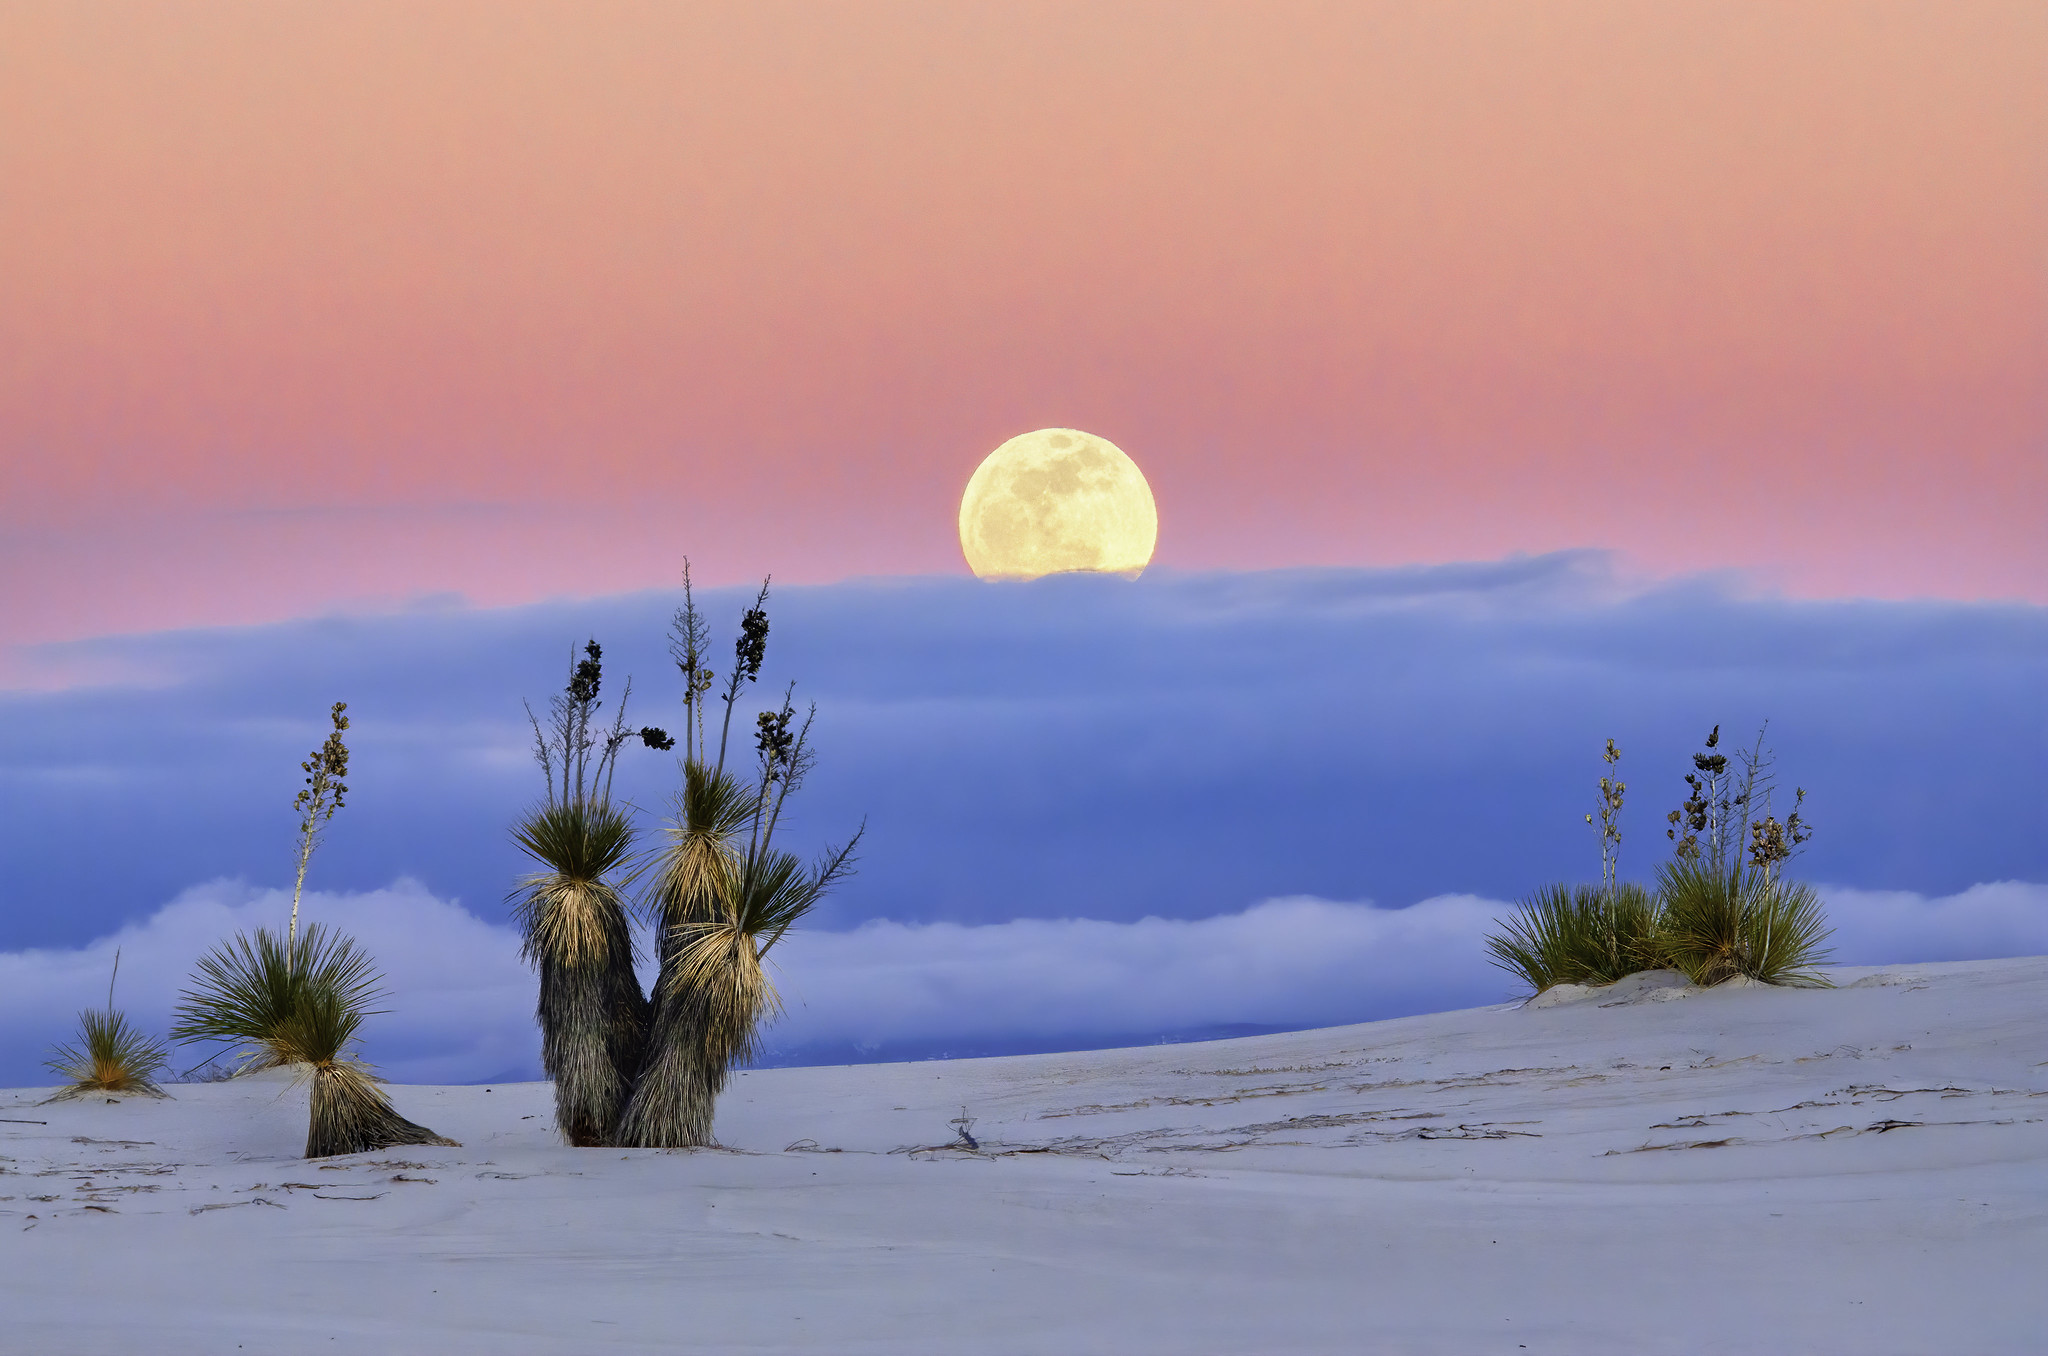 The moon rises above the White Sands National Monument in New Mexico with blue and pin pastel colored skies.